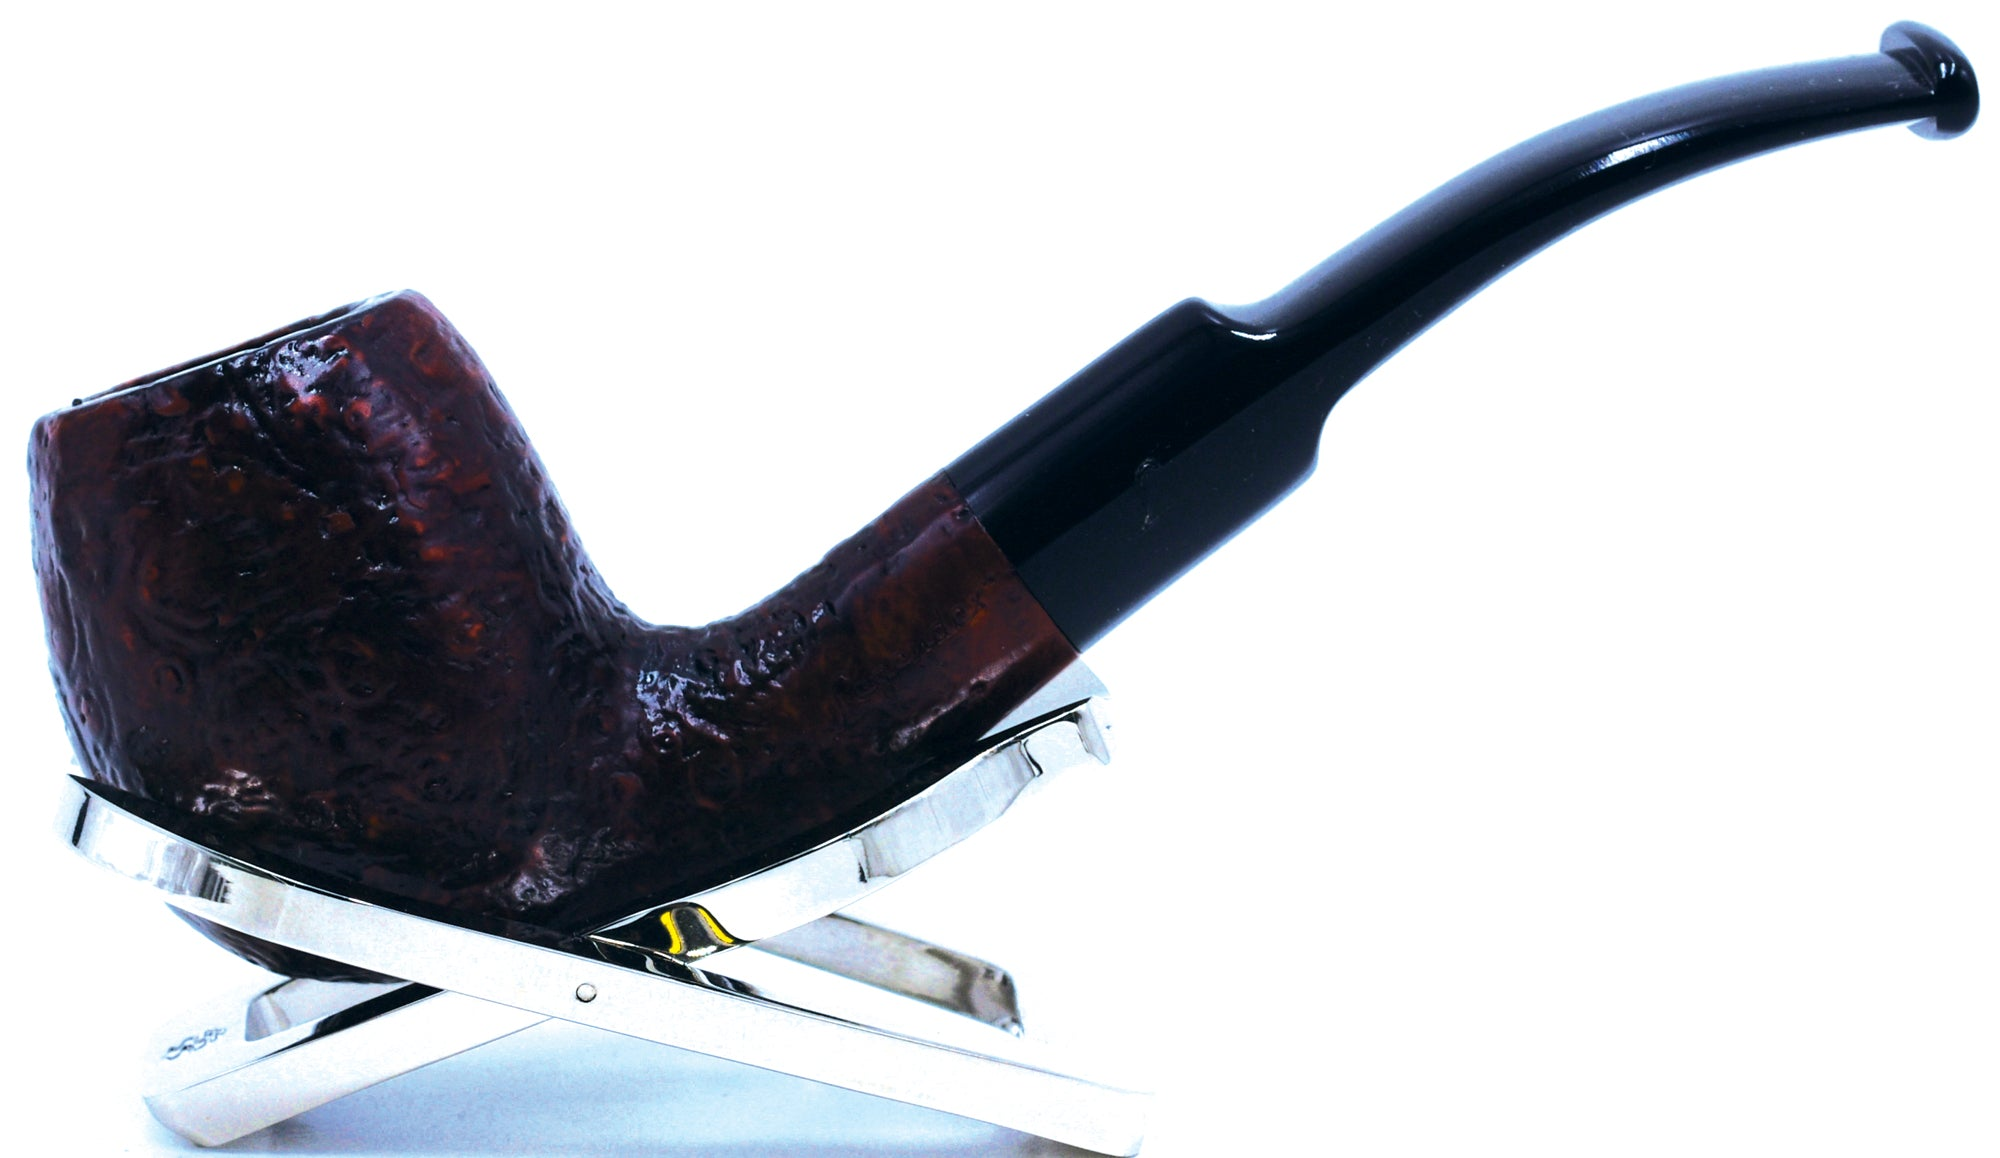 LEGENDEX® PAGANINI* 9 MM Filtered Briar Smoking Pipe Made In Italy 01-08-339